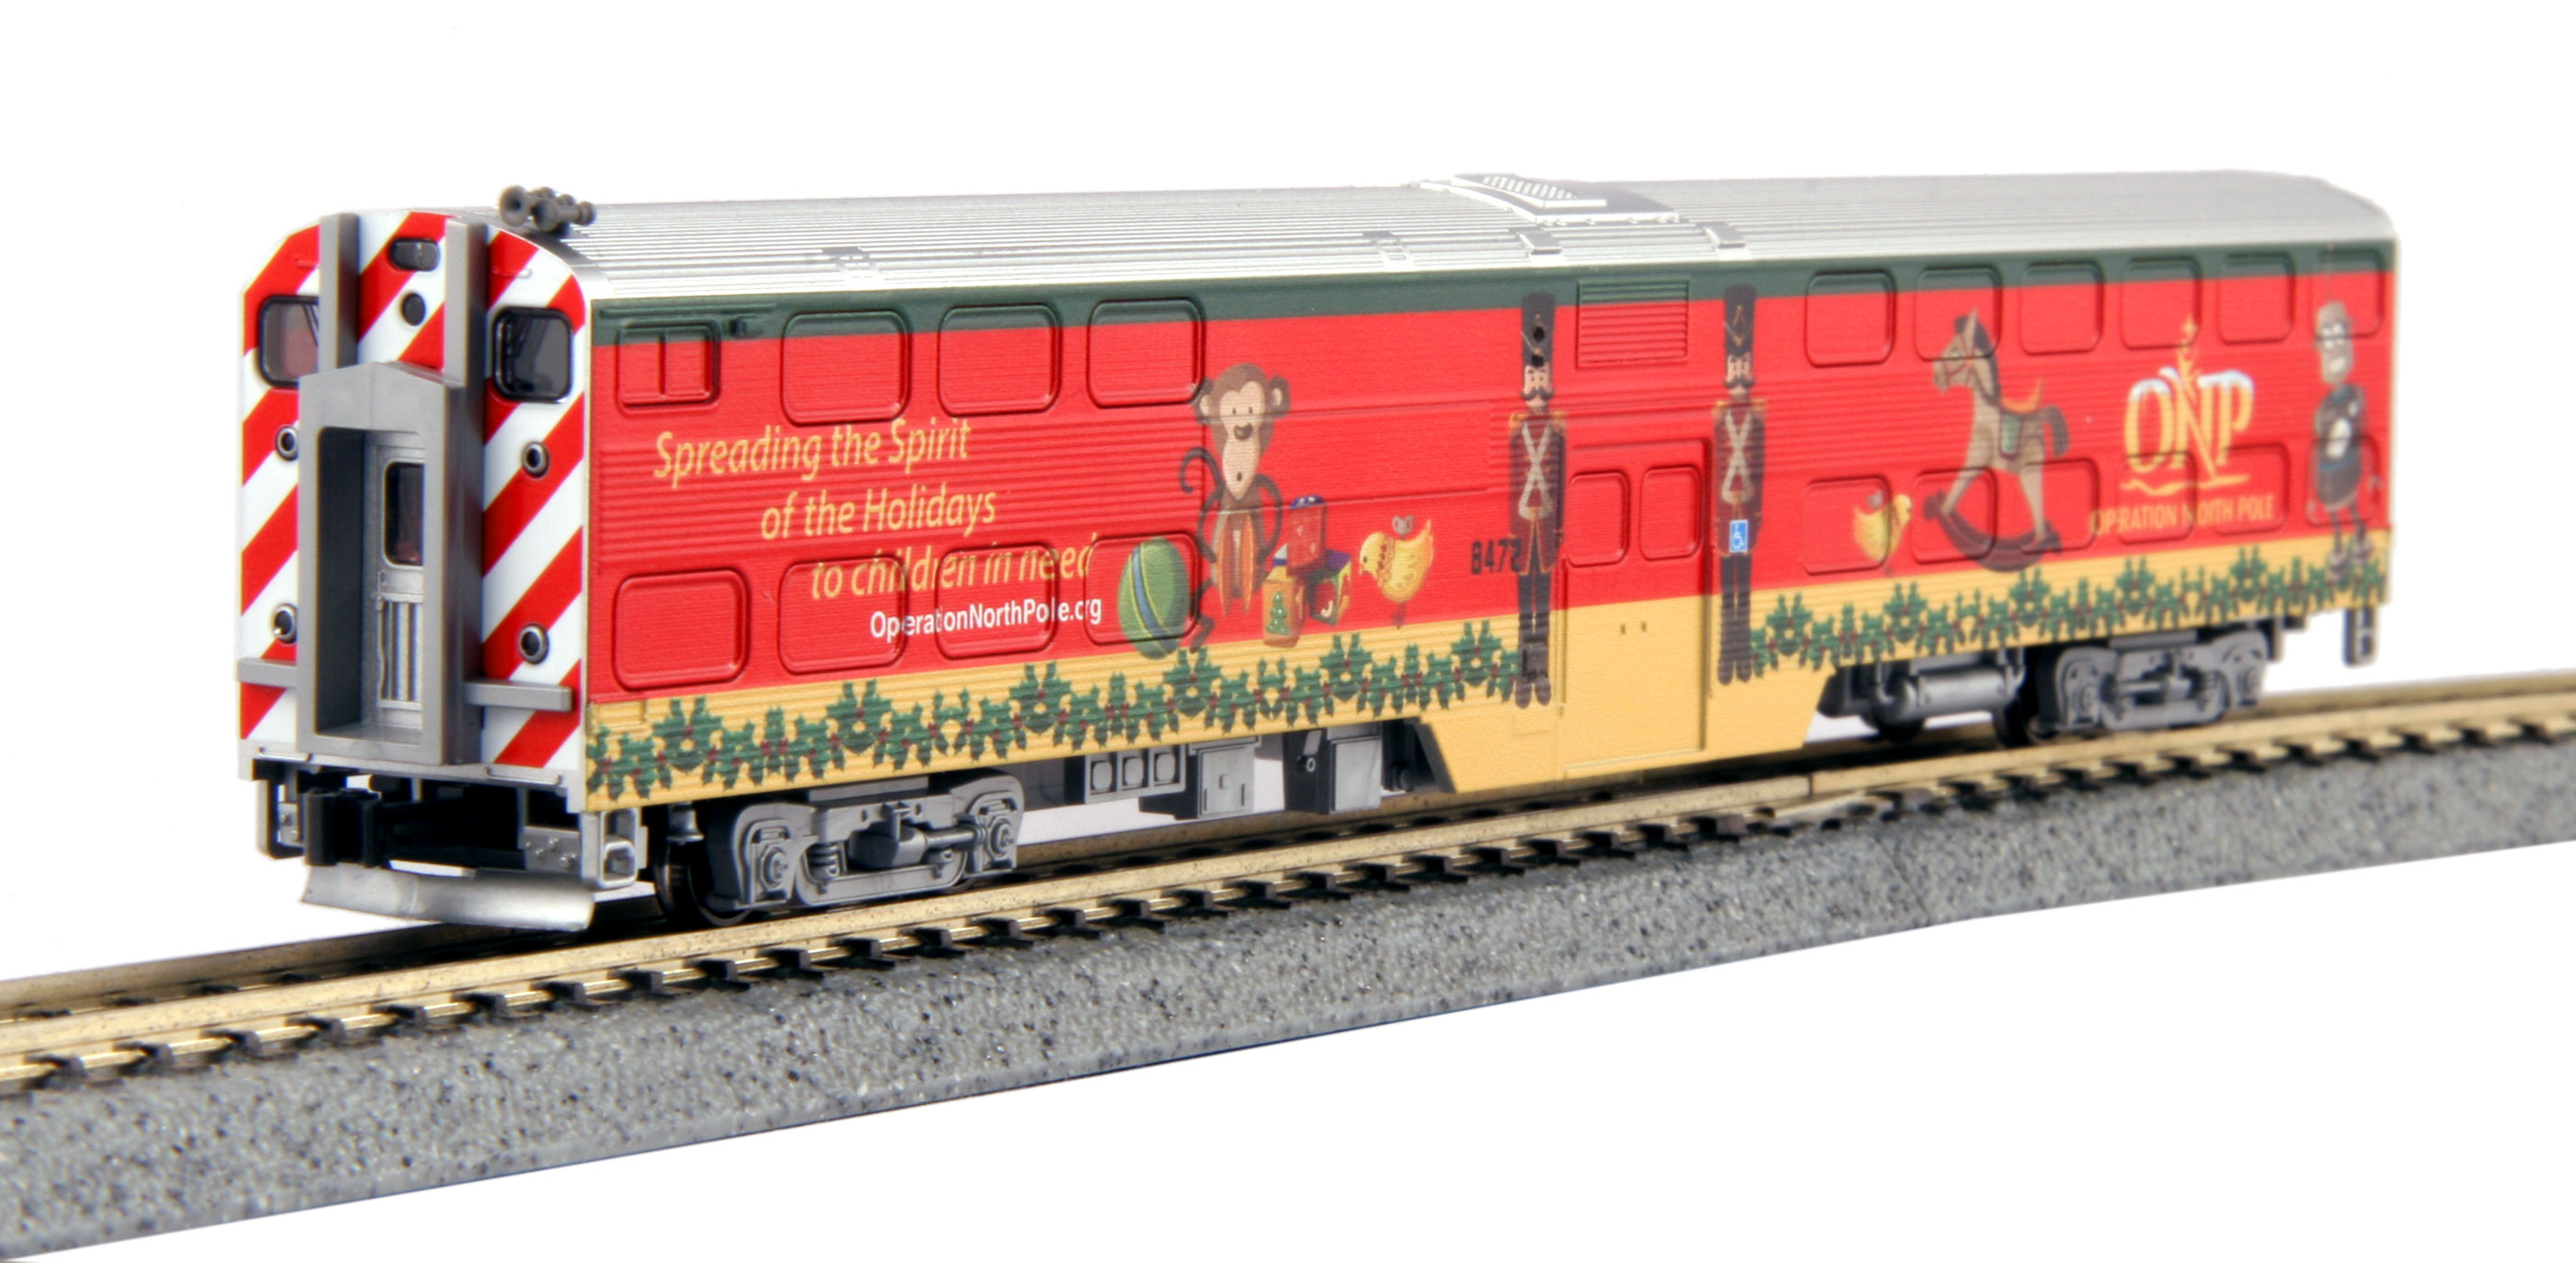 N Scale - Kato USA - 106-2015-D - Passenger Car, Commuter, Nippon Sharyo Gallery - Operation North Pole - Spreading the Spirit